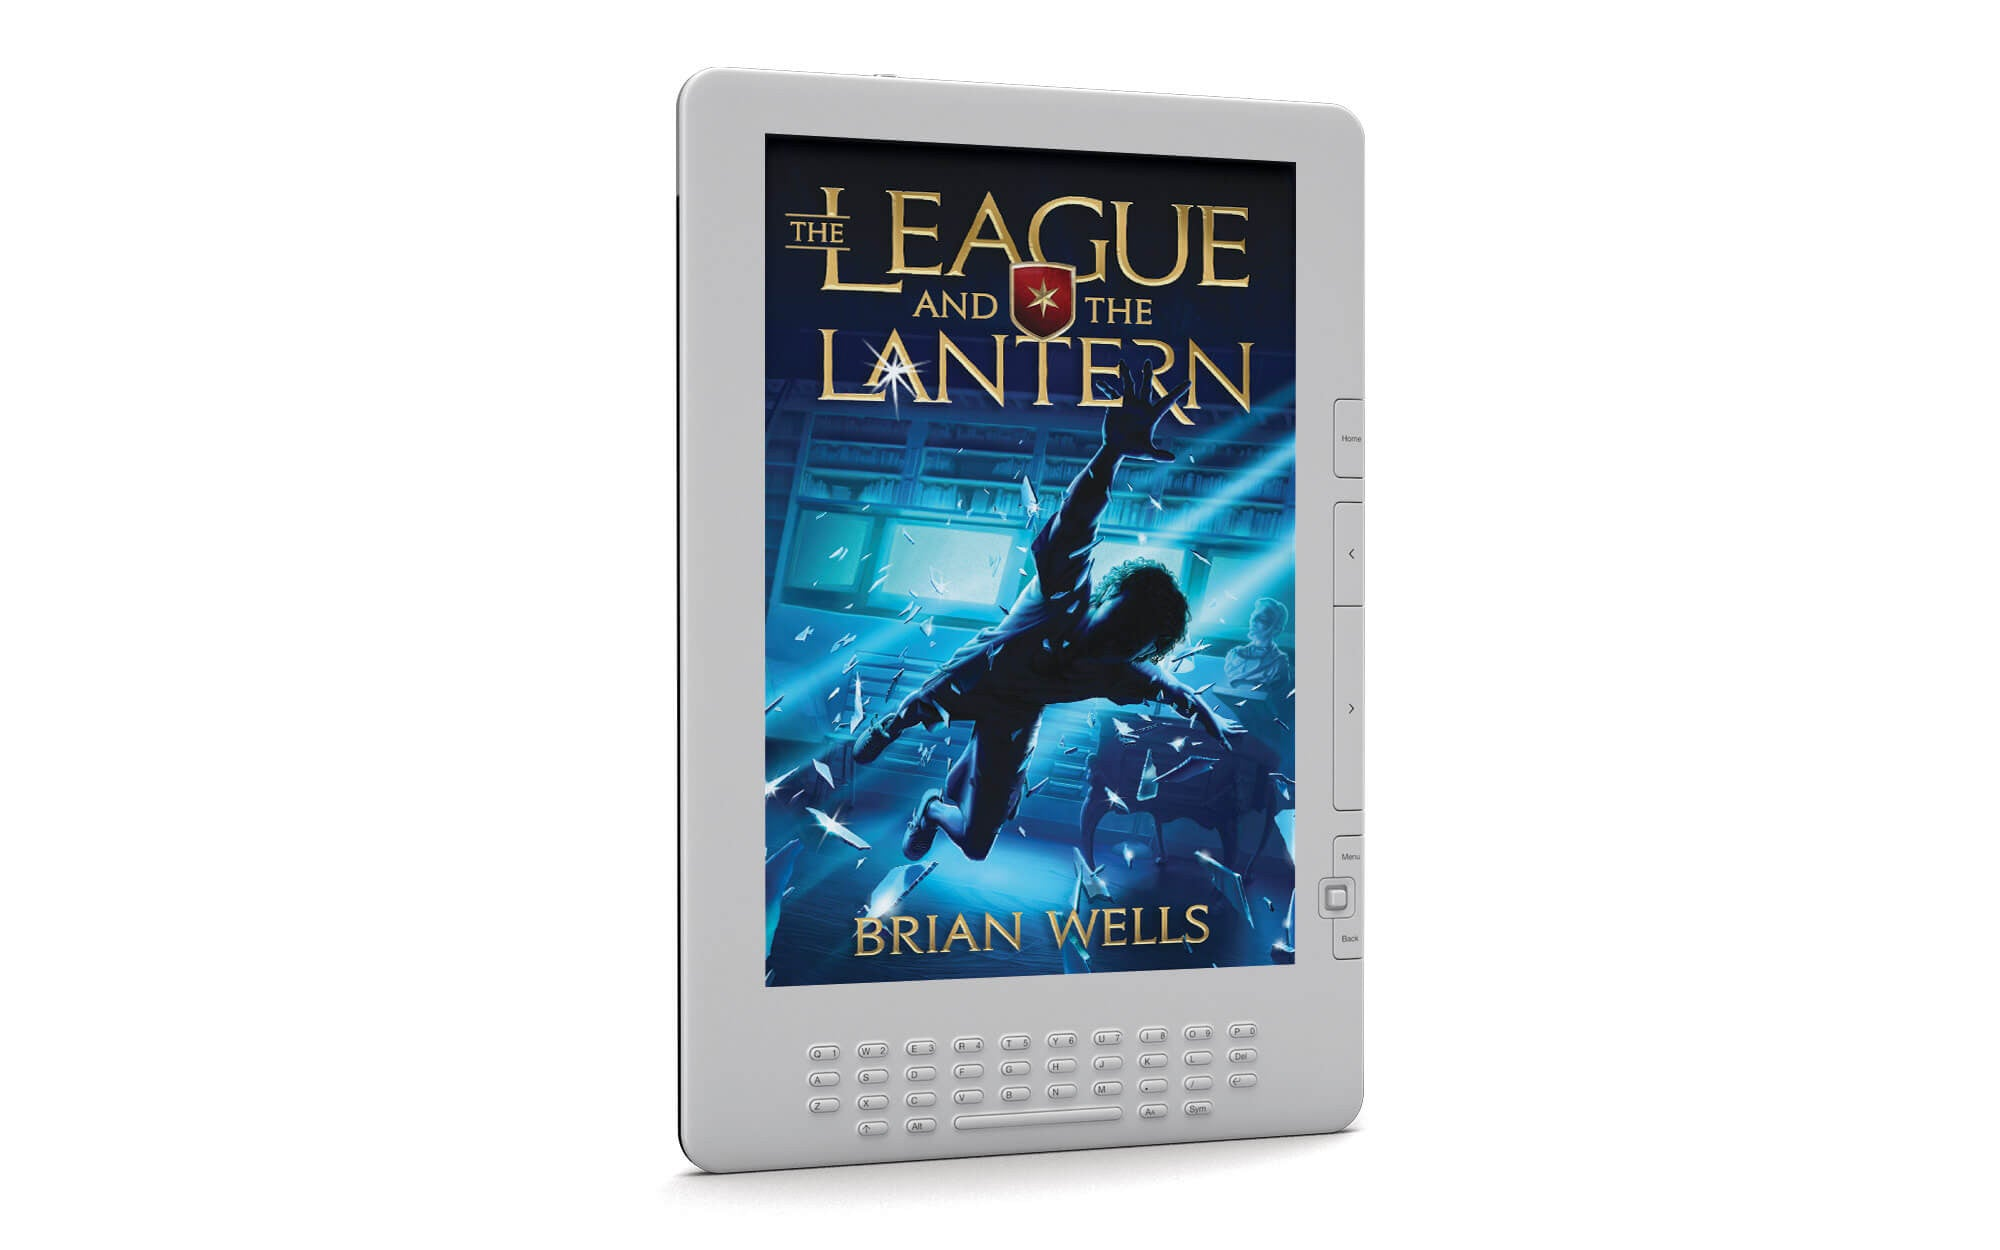 The League and the Lantern - eBook Download - by Brian Wells